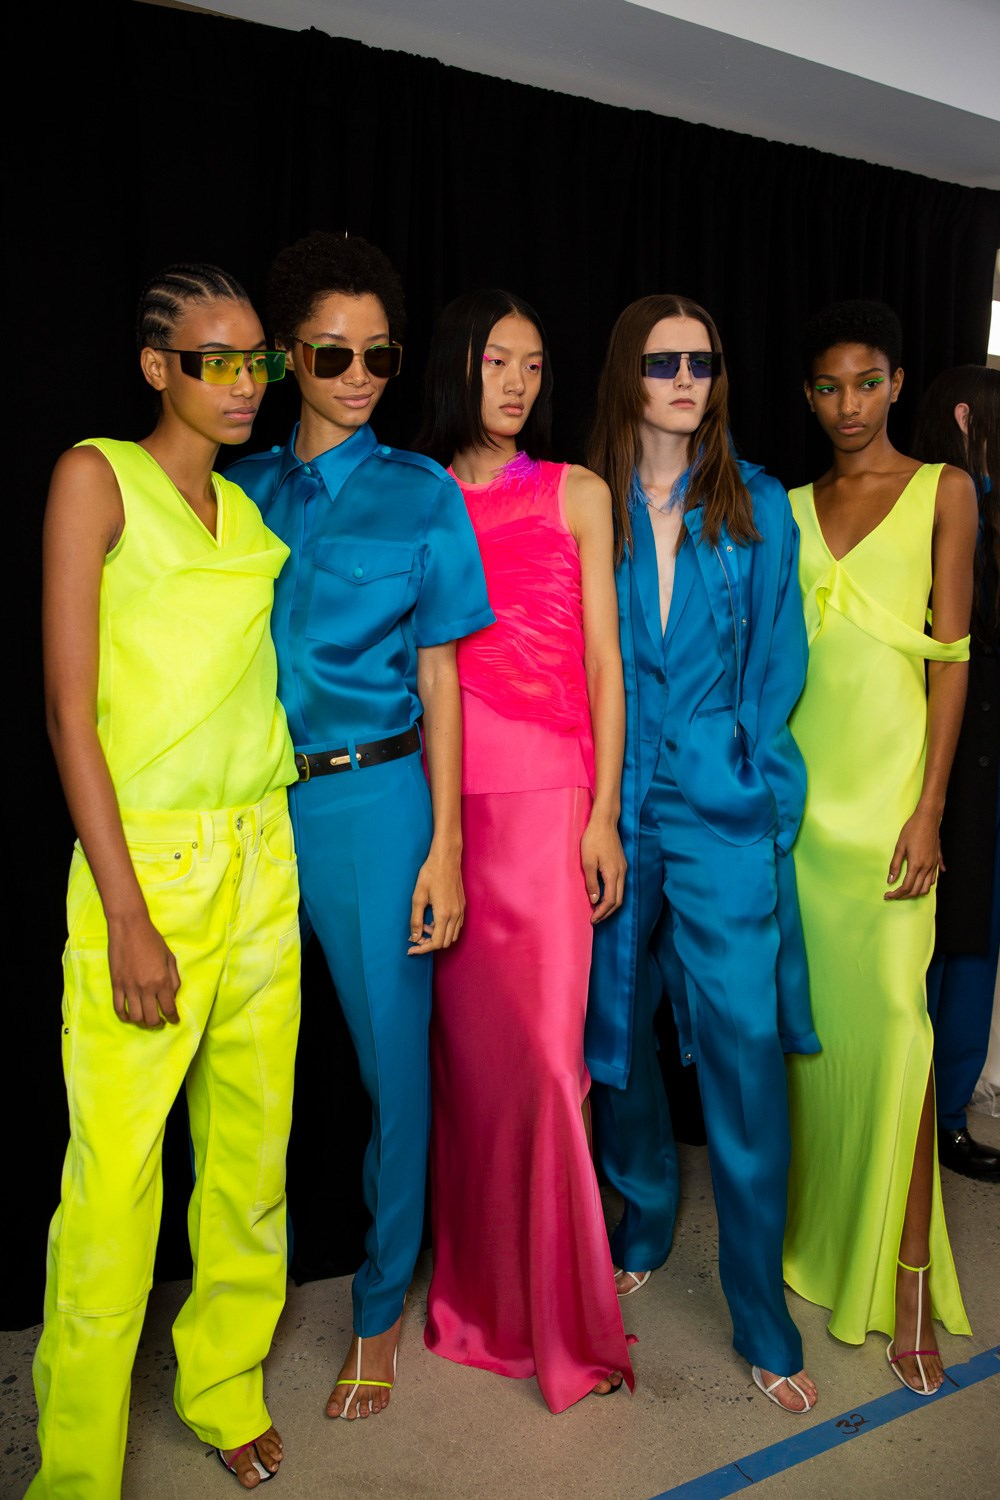 New vibrant color yet a retention of minimalism at Helmut Lang SS20 (Photo: theimpression.com)